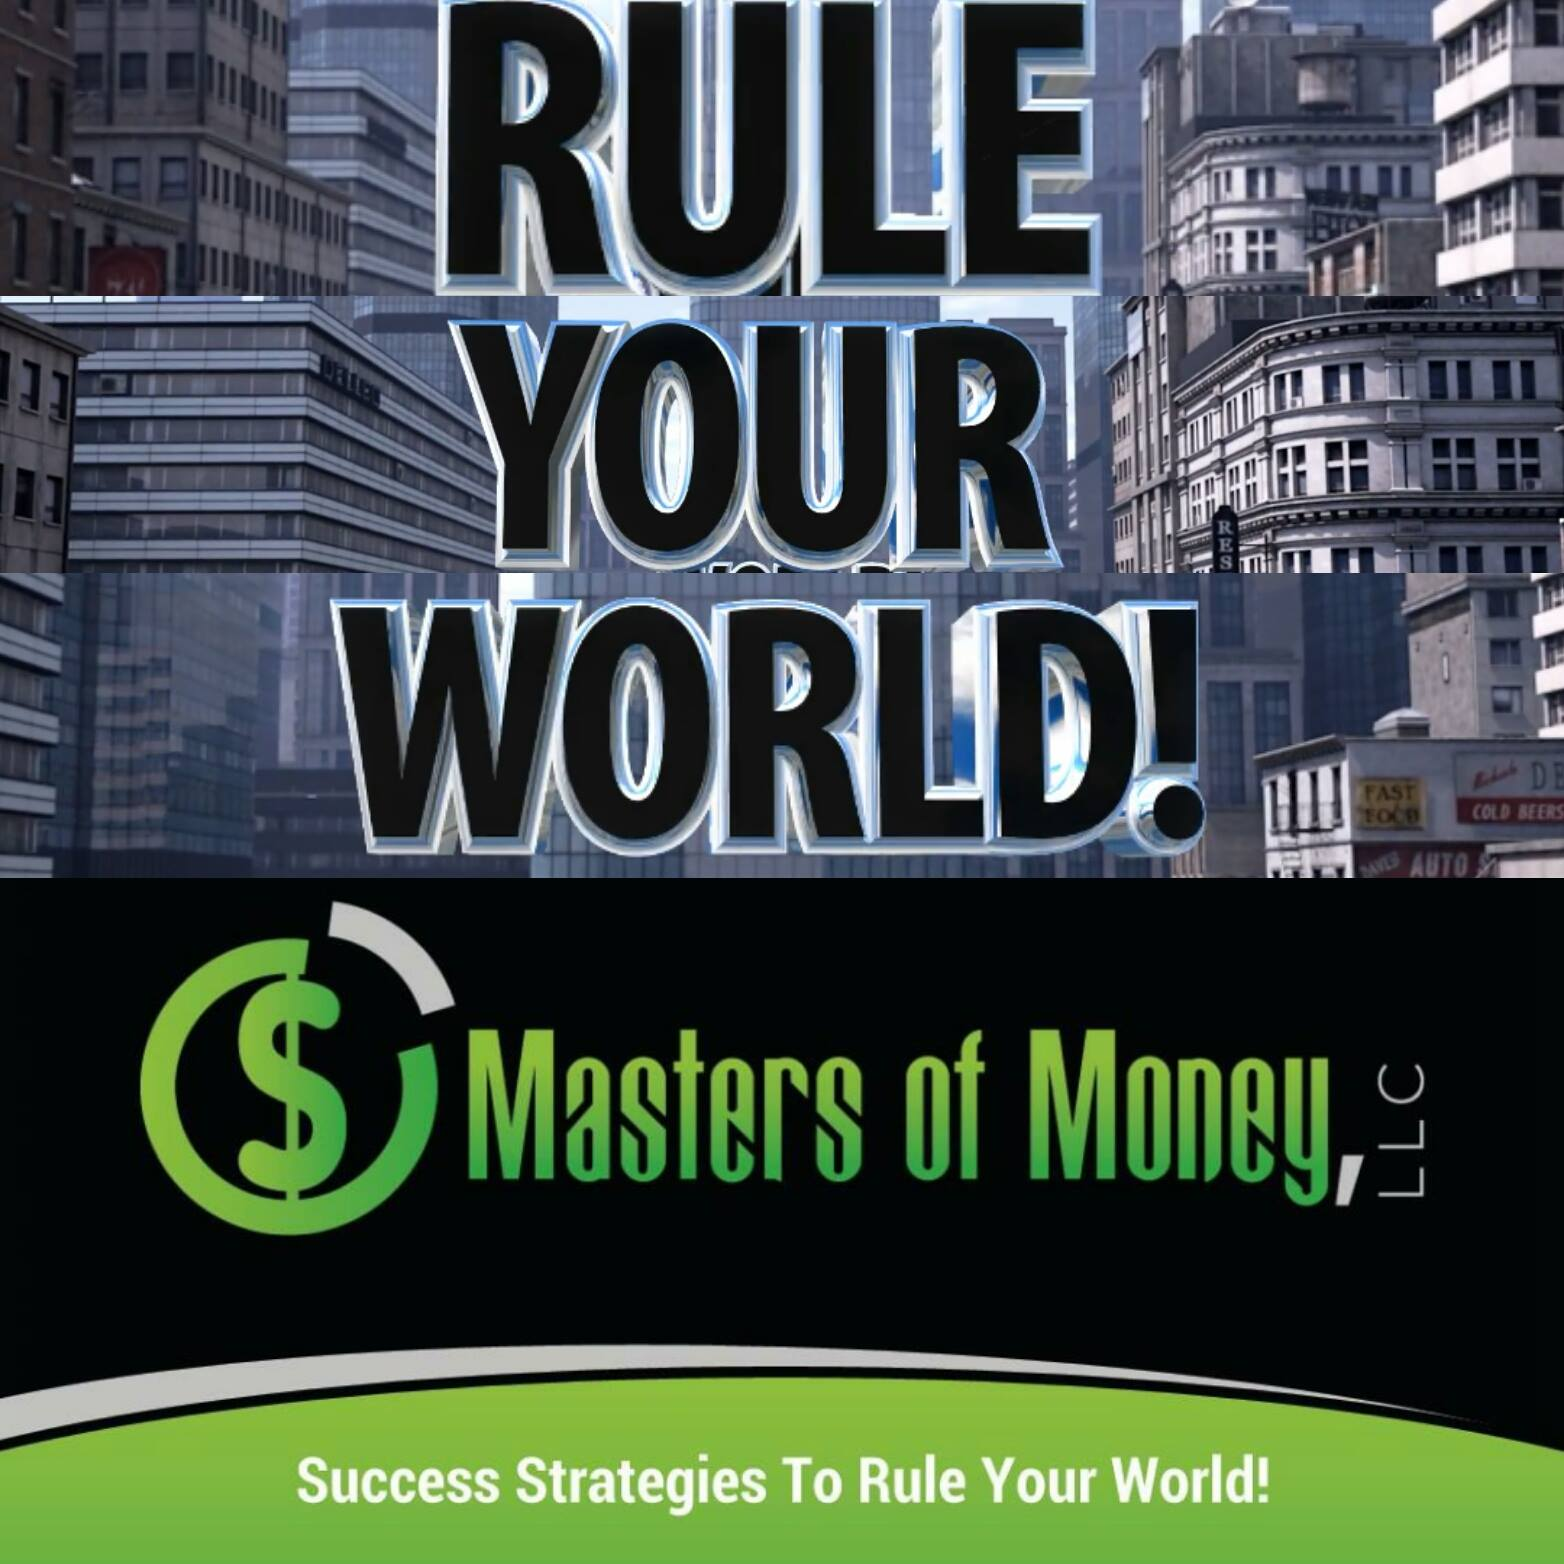 Masters of Money LLC Rule Your World Quote Picture